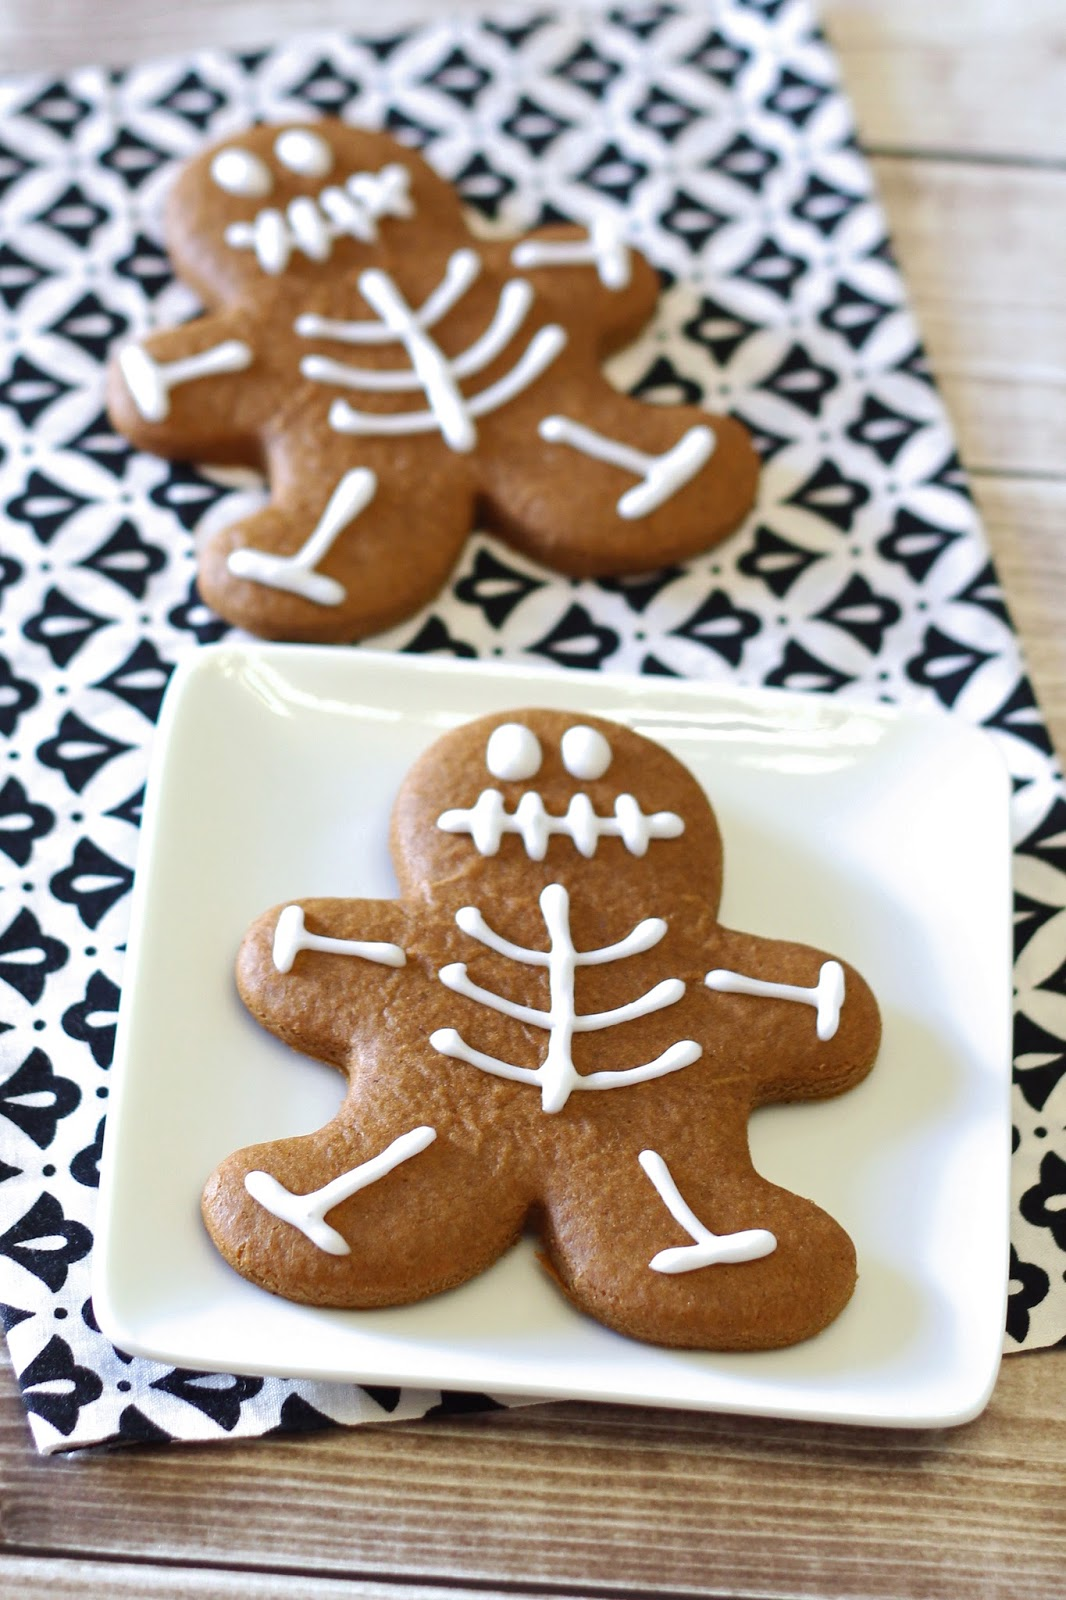 gluten-free vegan gingerbread skeleton cookies